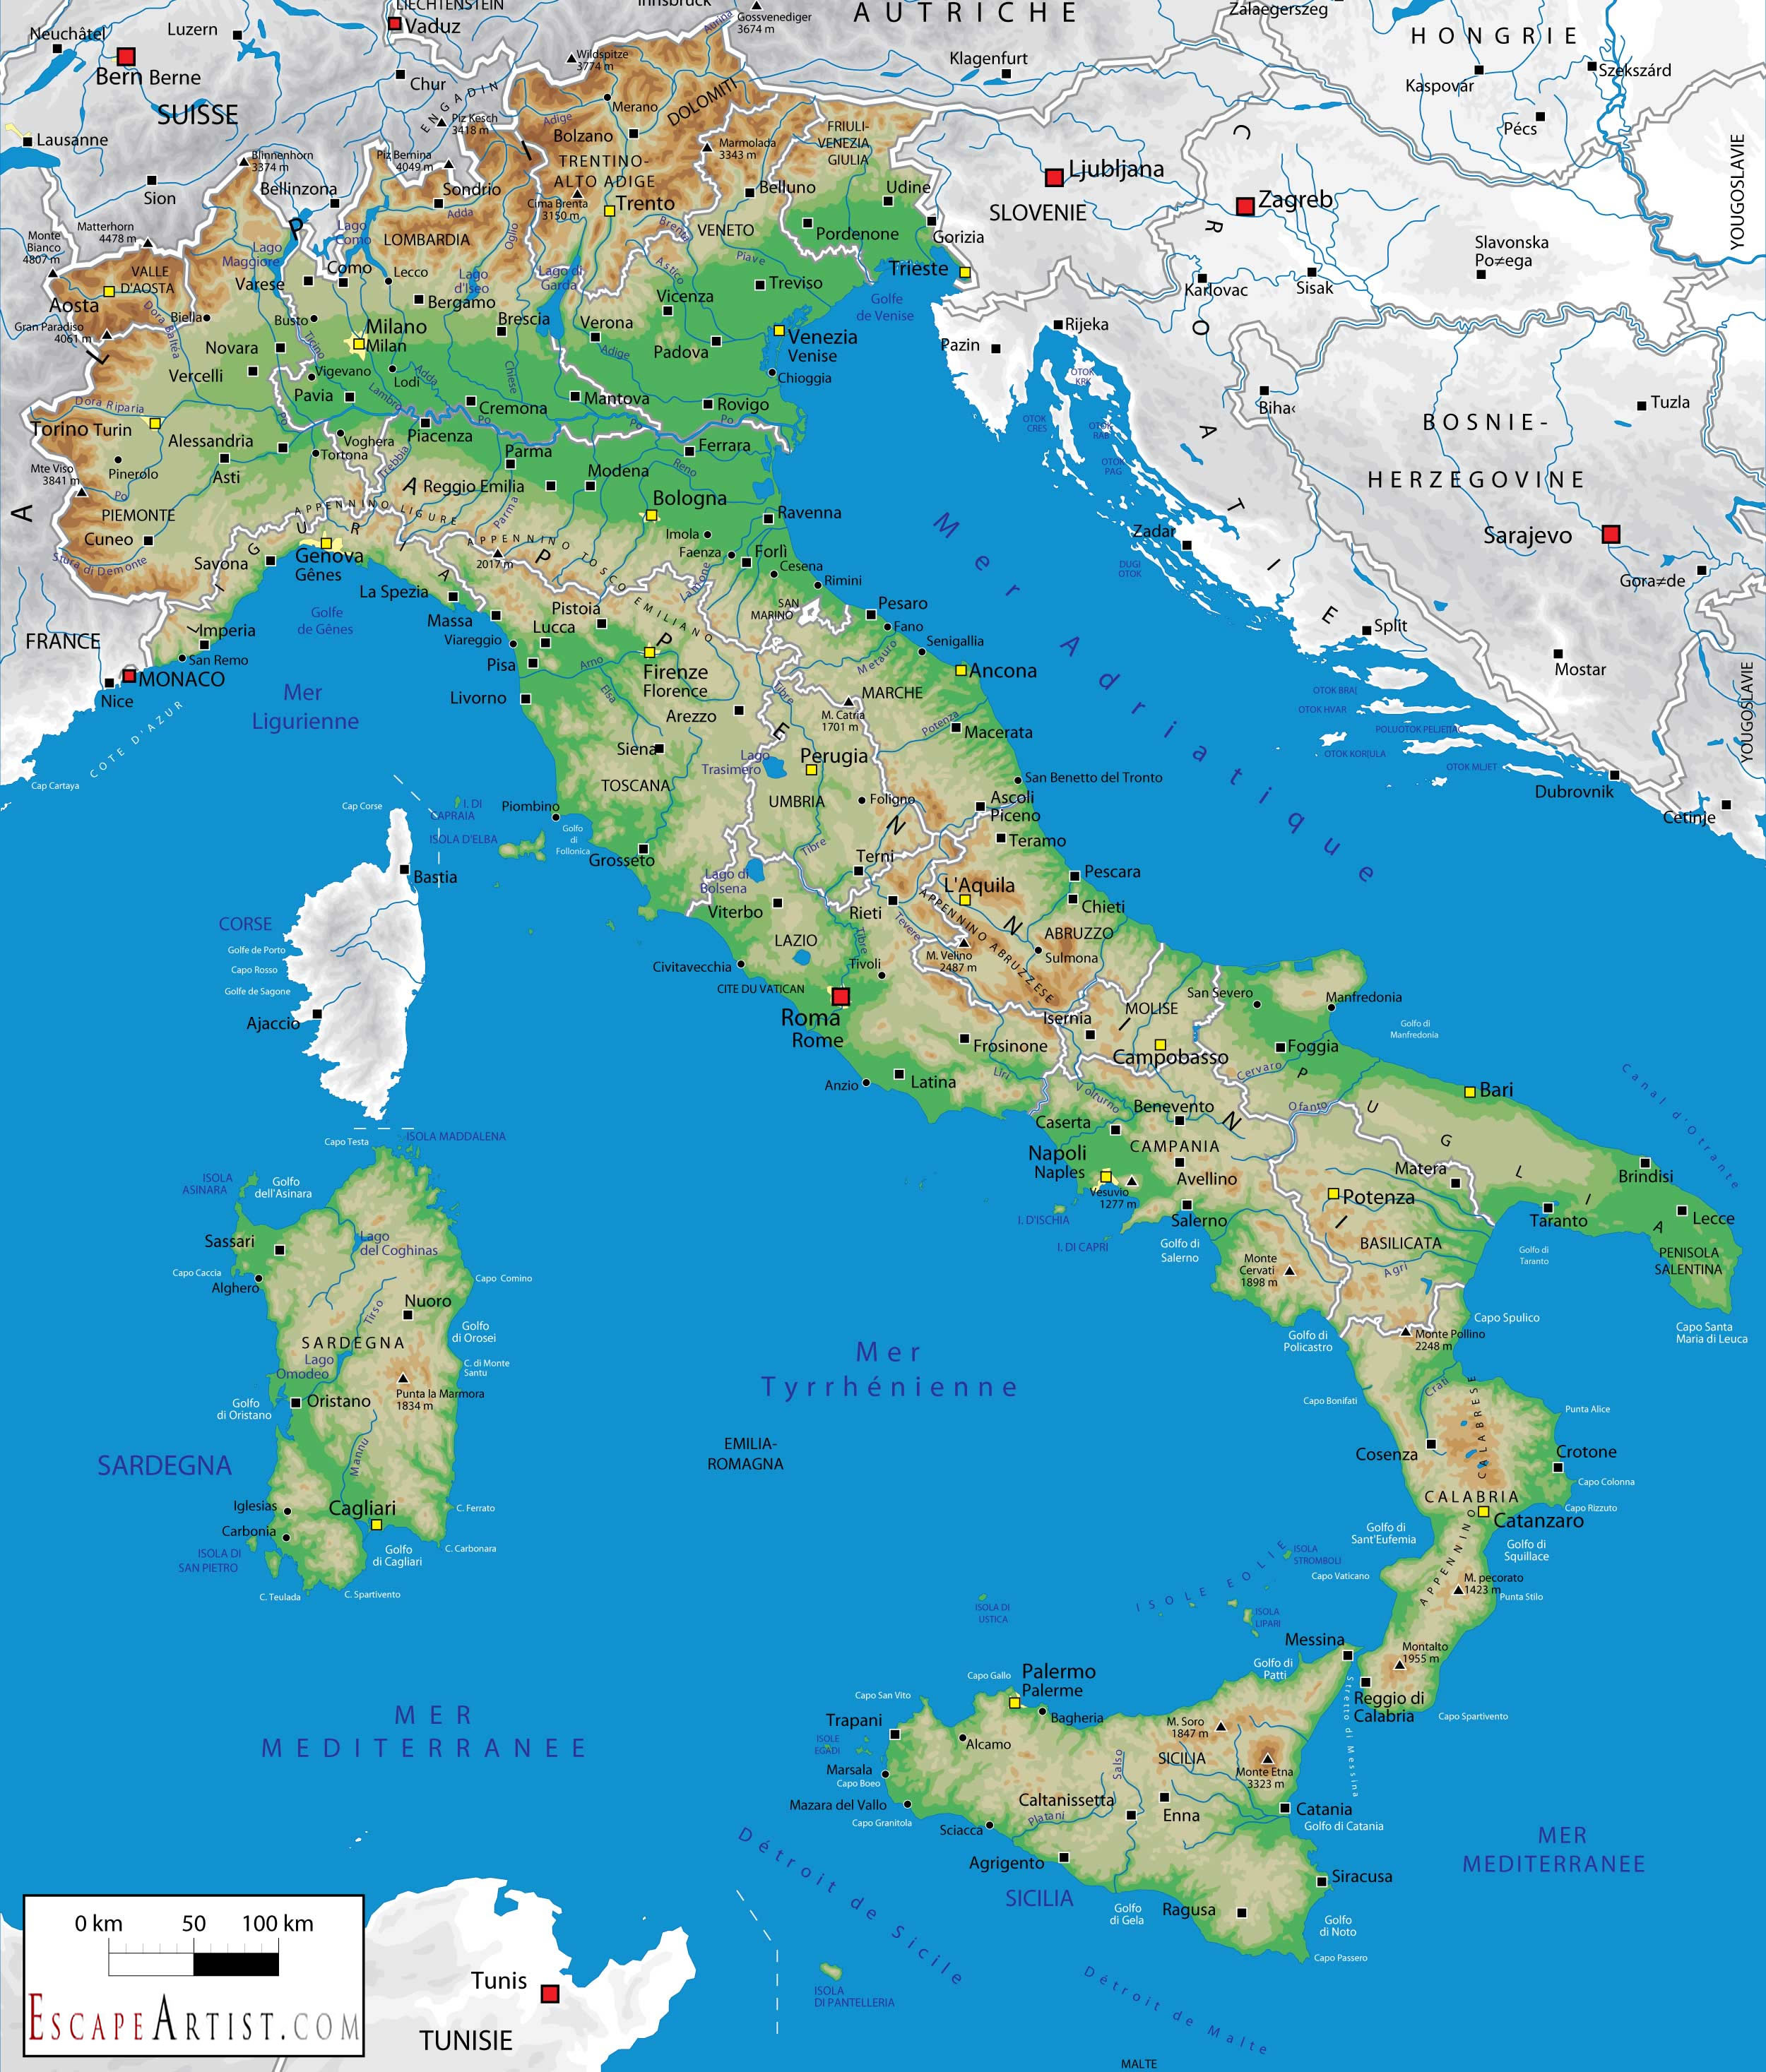 cu map with Harta Italia on Carte Epci  munes Region likewise Carte Epci Region furthermore Roumanie in addition munis together with Before The Pacific Putting Ancient Islands Back On The Map.